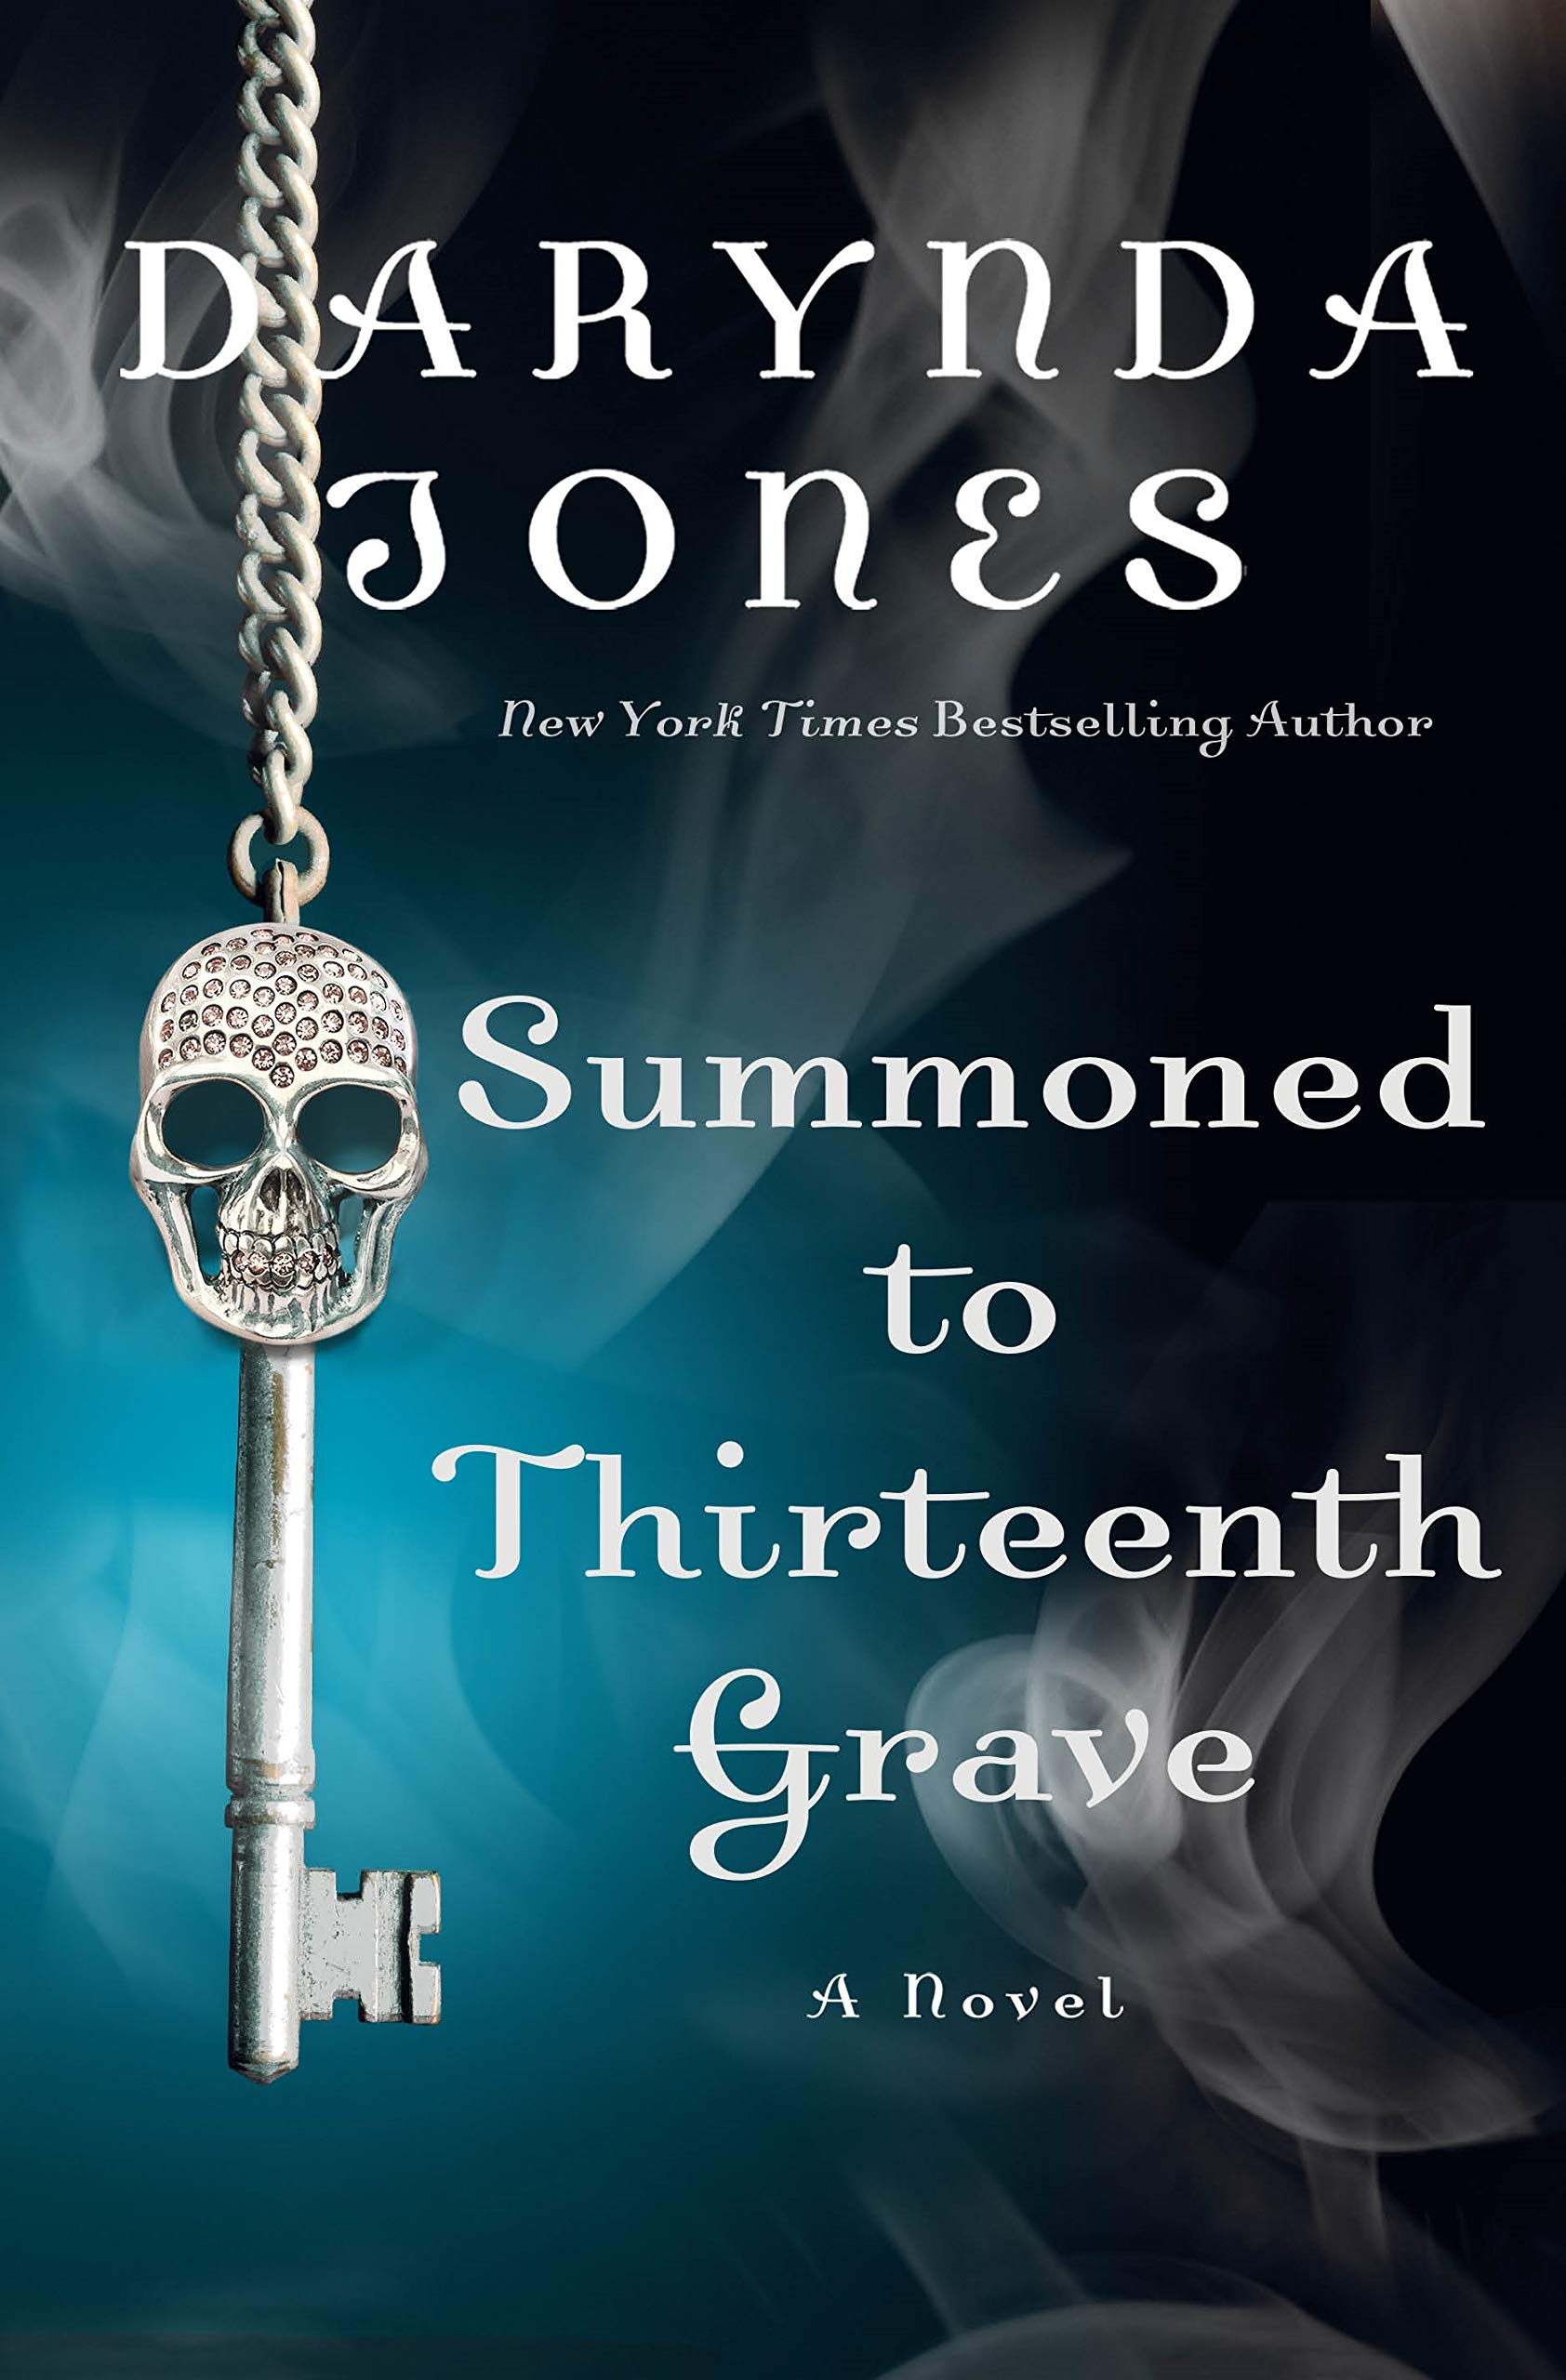 Summoned-to-Thirteenth-Grave-A-Novel-Charley-Davidson-Series